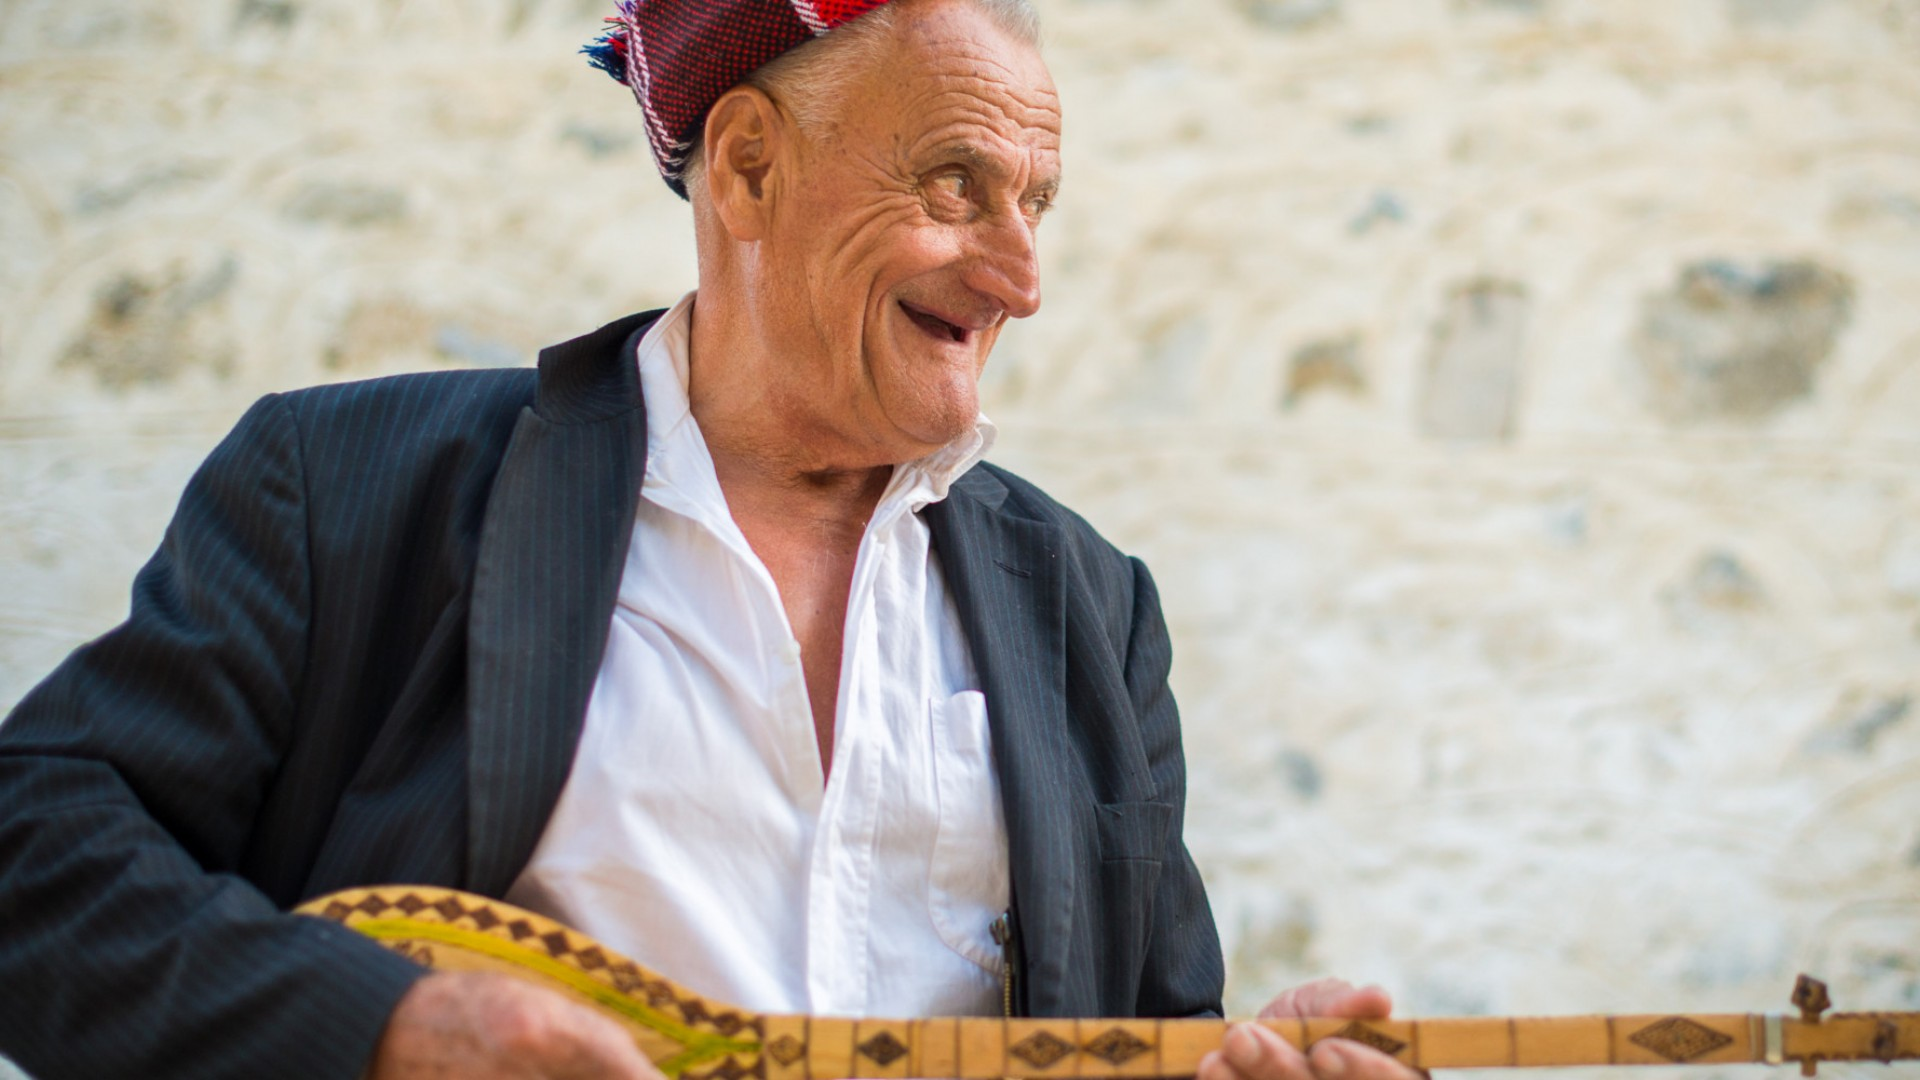 man playing an instrument in albania